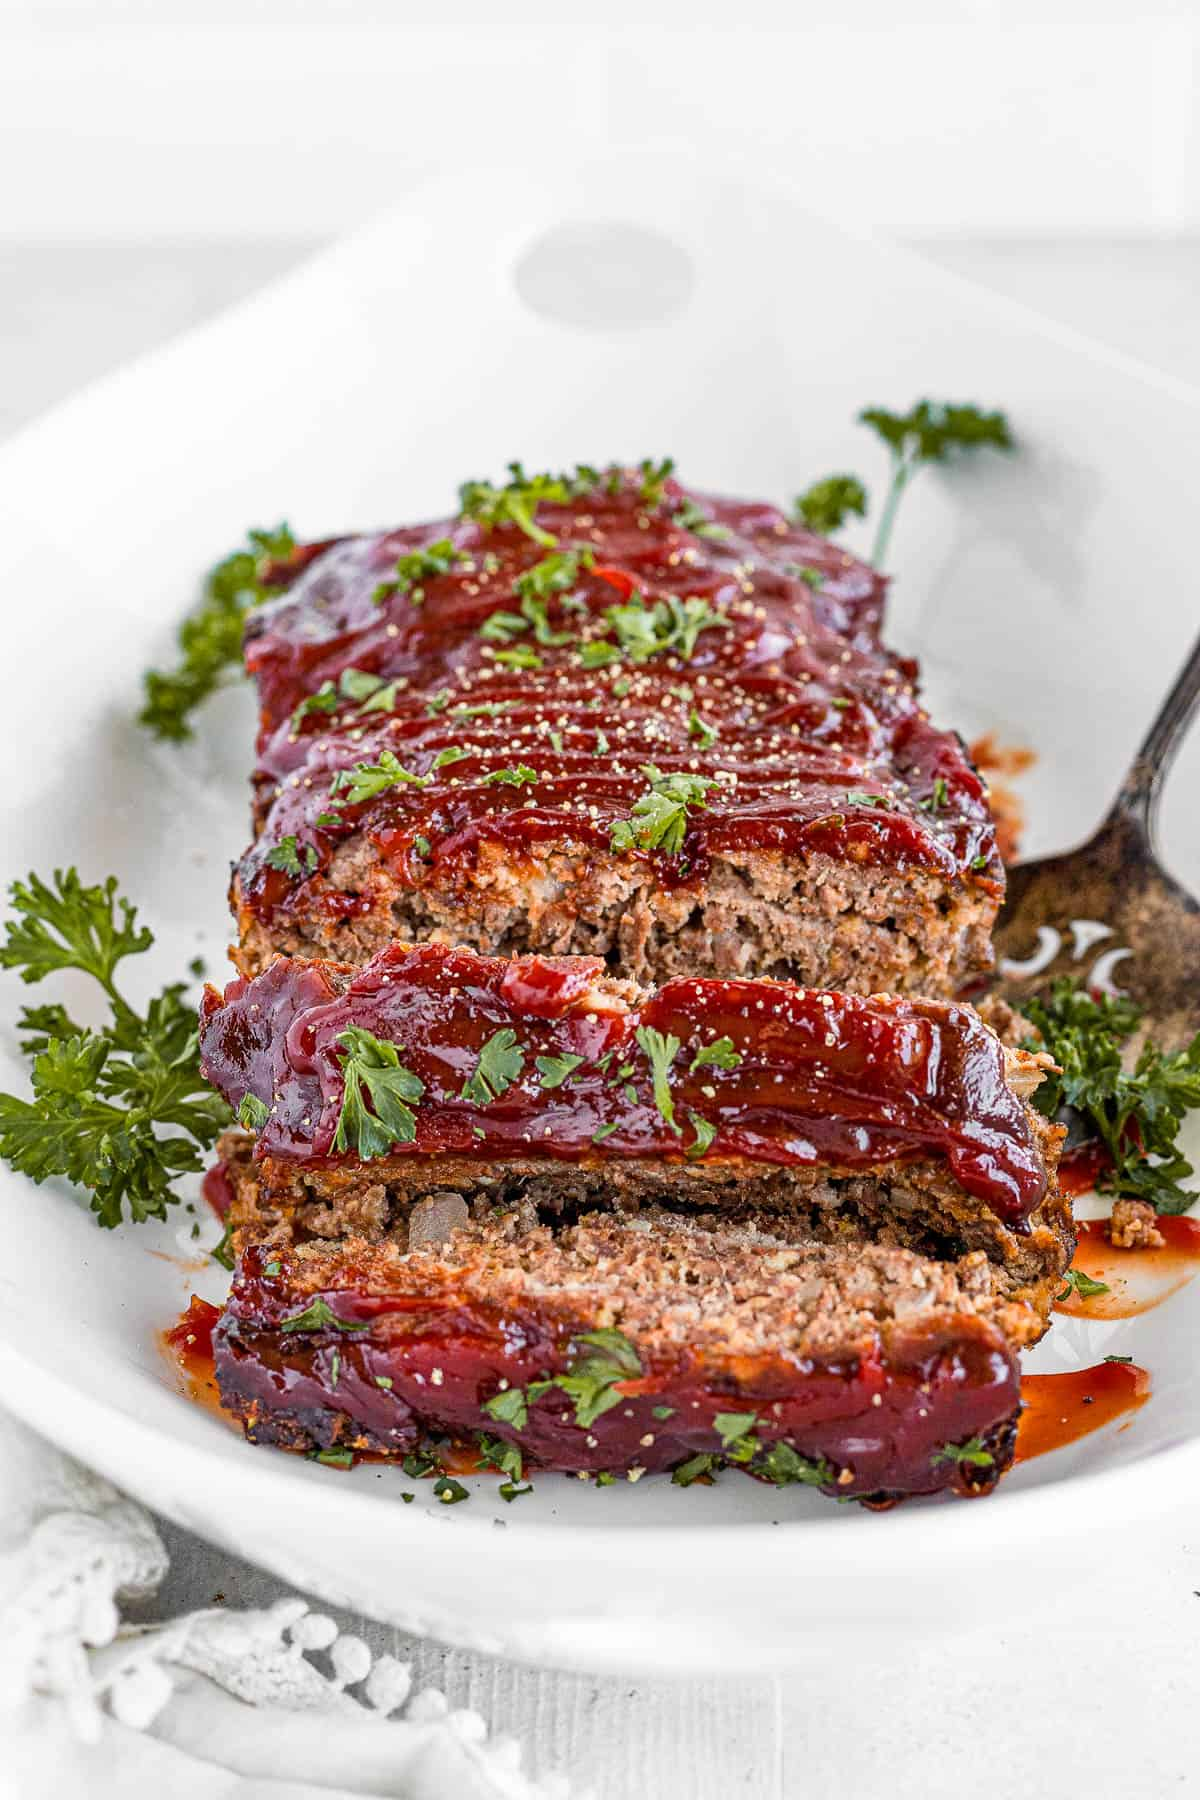 A Plate of Homemade Meatloaf Garnished with Fresh Chopped Parsley